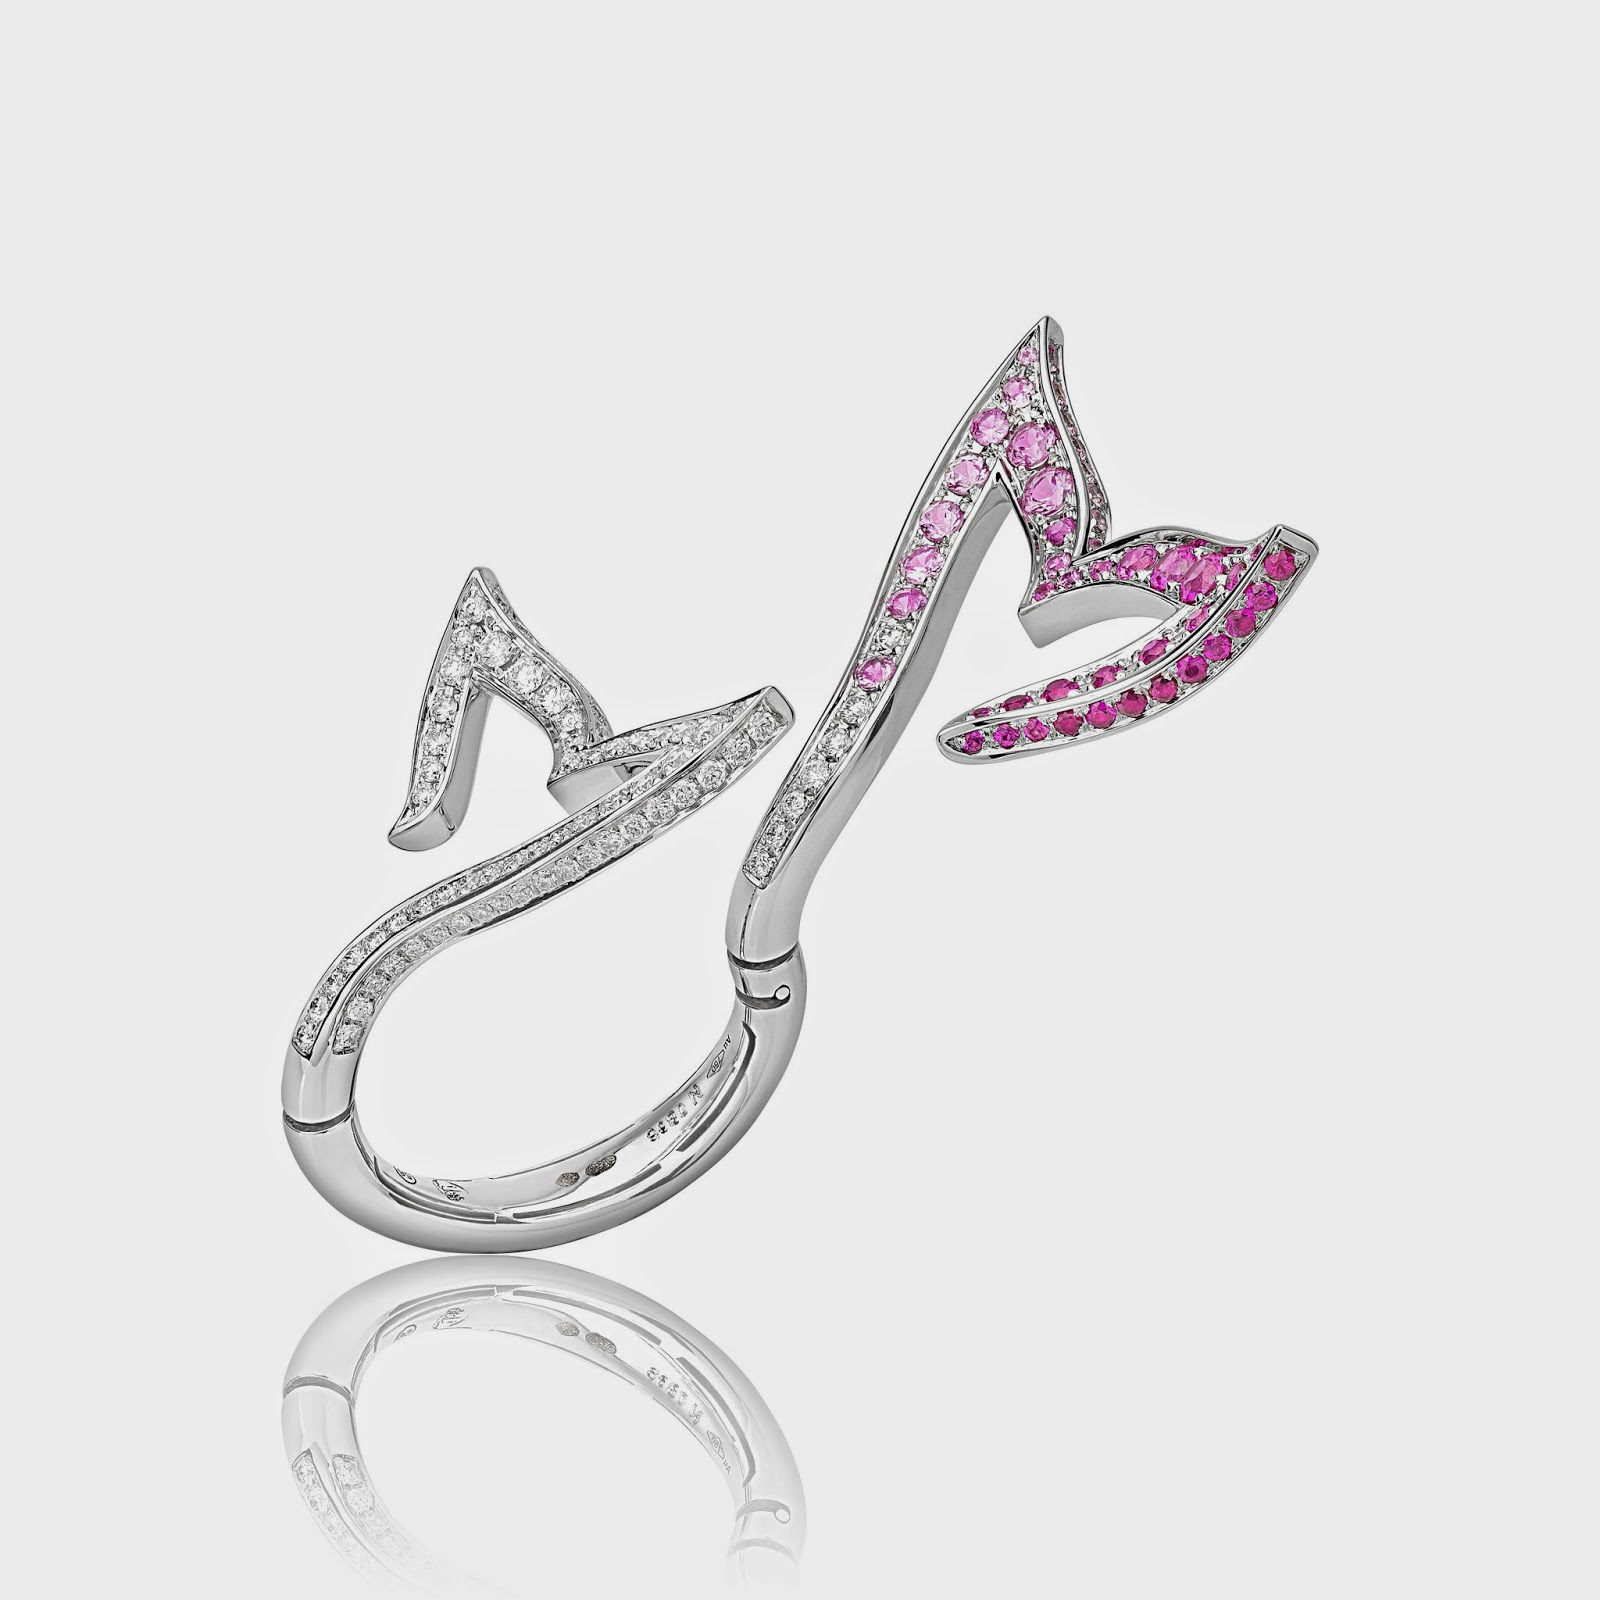 4cd486d1a8a The flexible Mermaid Tail ring from the Beauty of the Sea Collection has white  diamonds and pink sapphires set in 18k white gold.